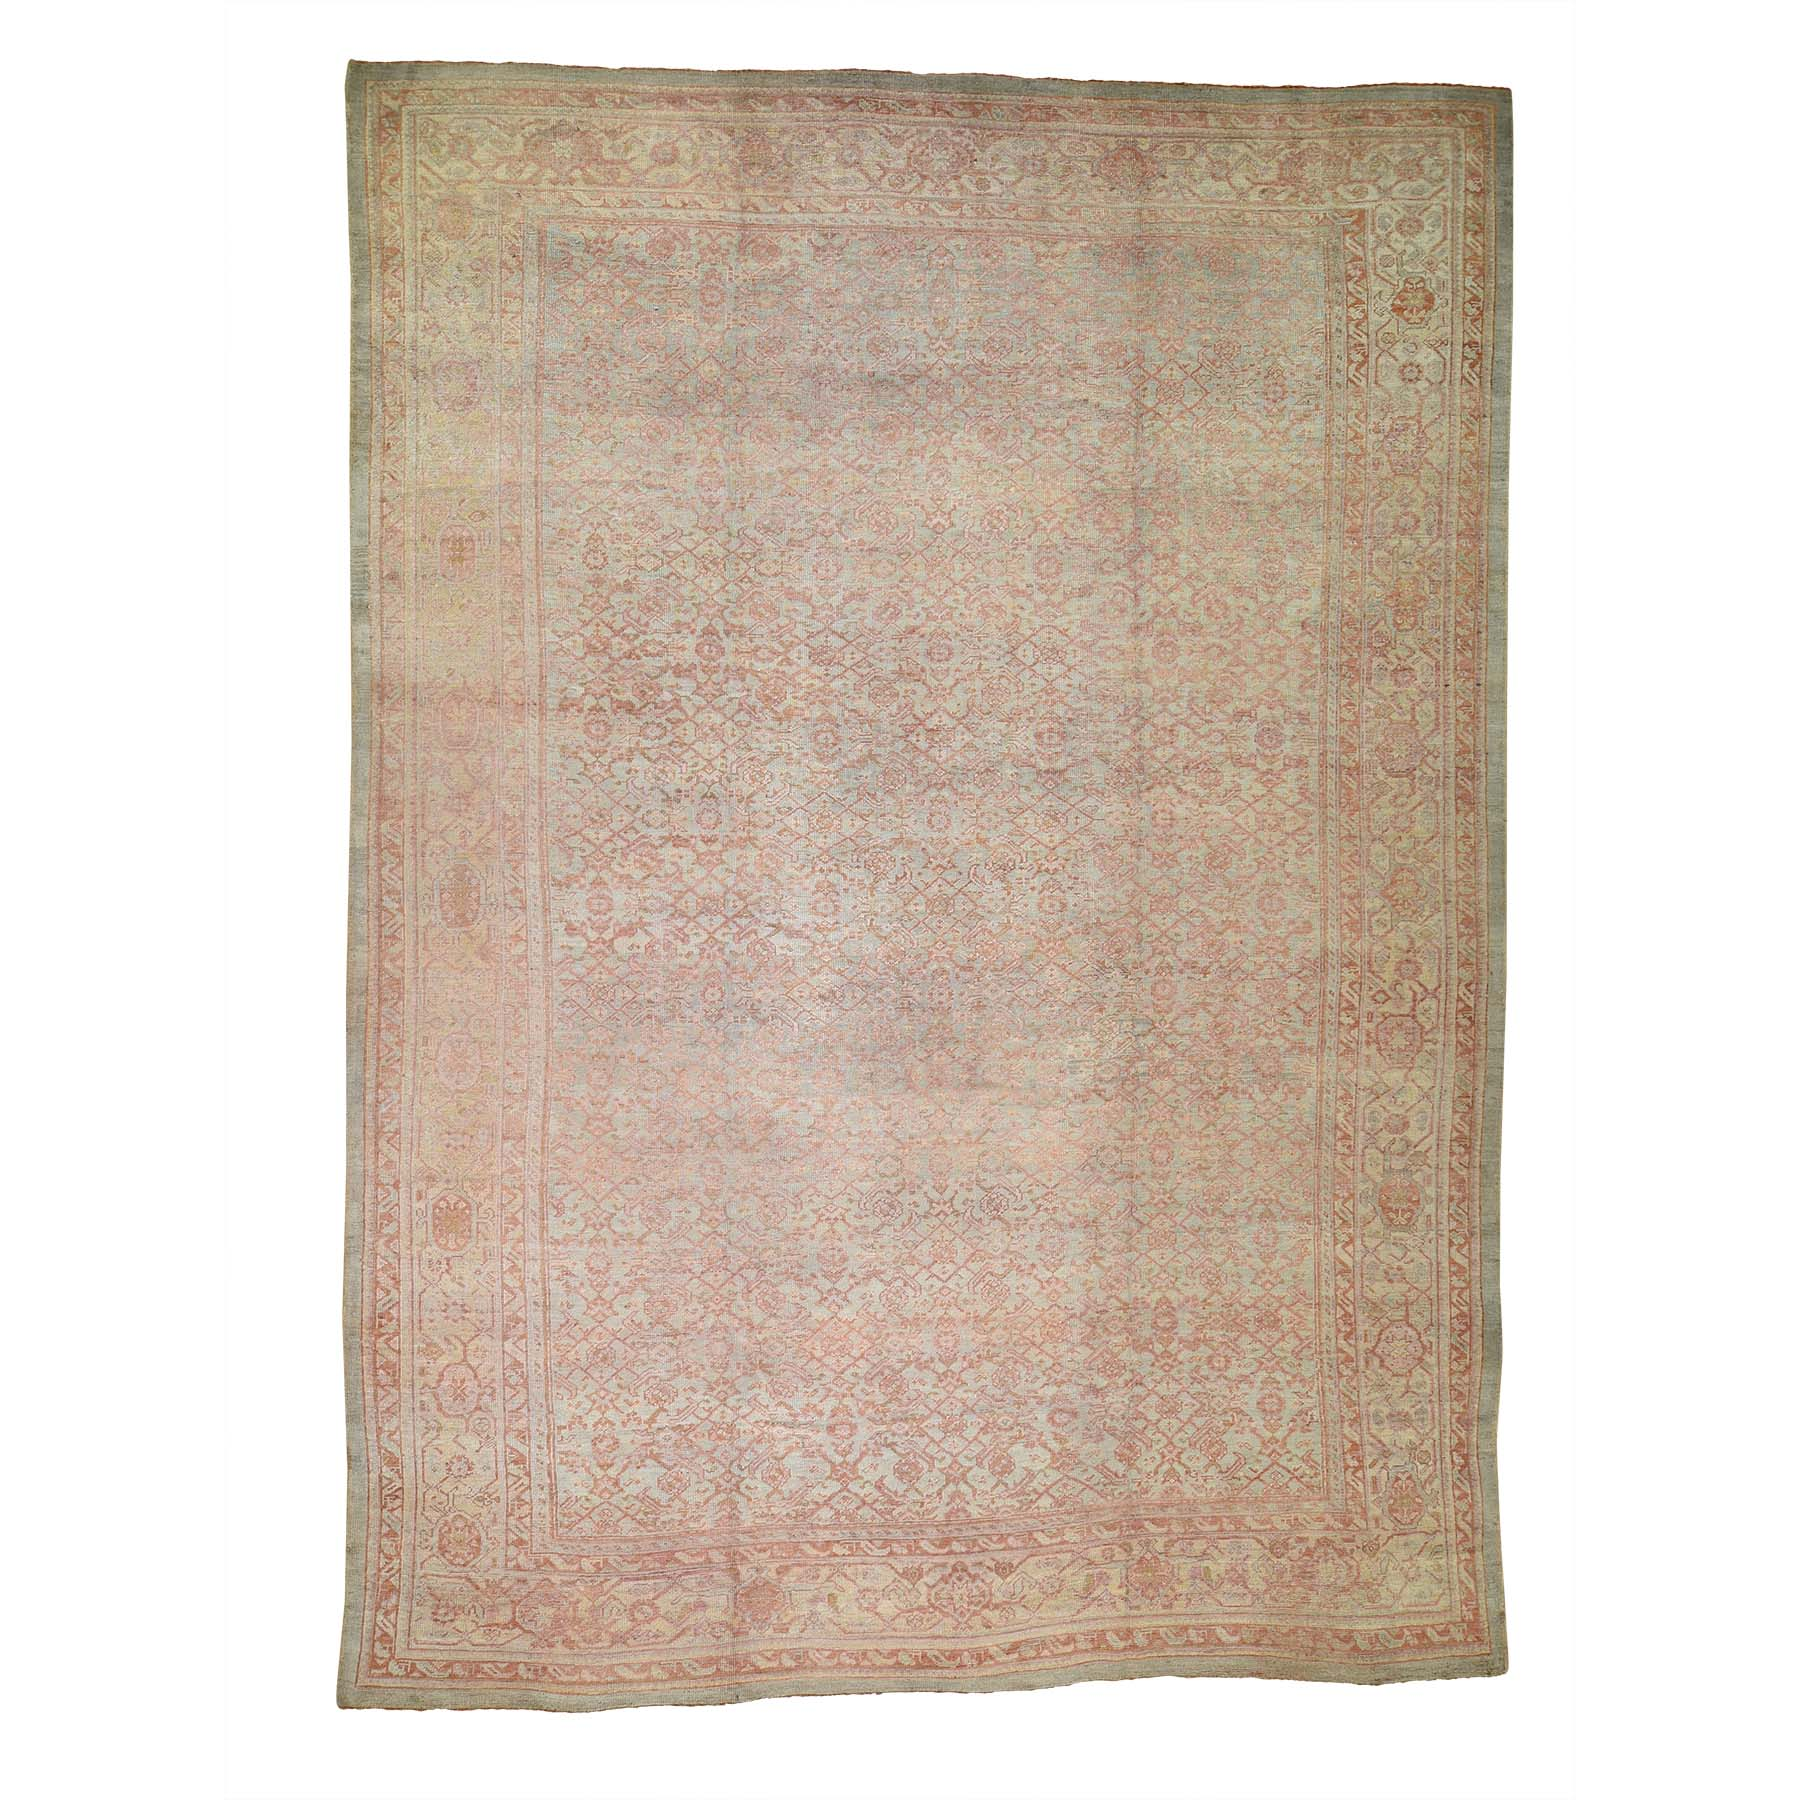 Antique Collection Hand Knotted Orange Rug No: 0189476